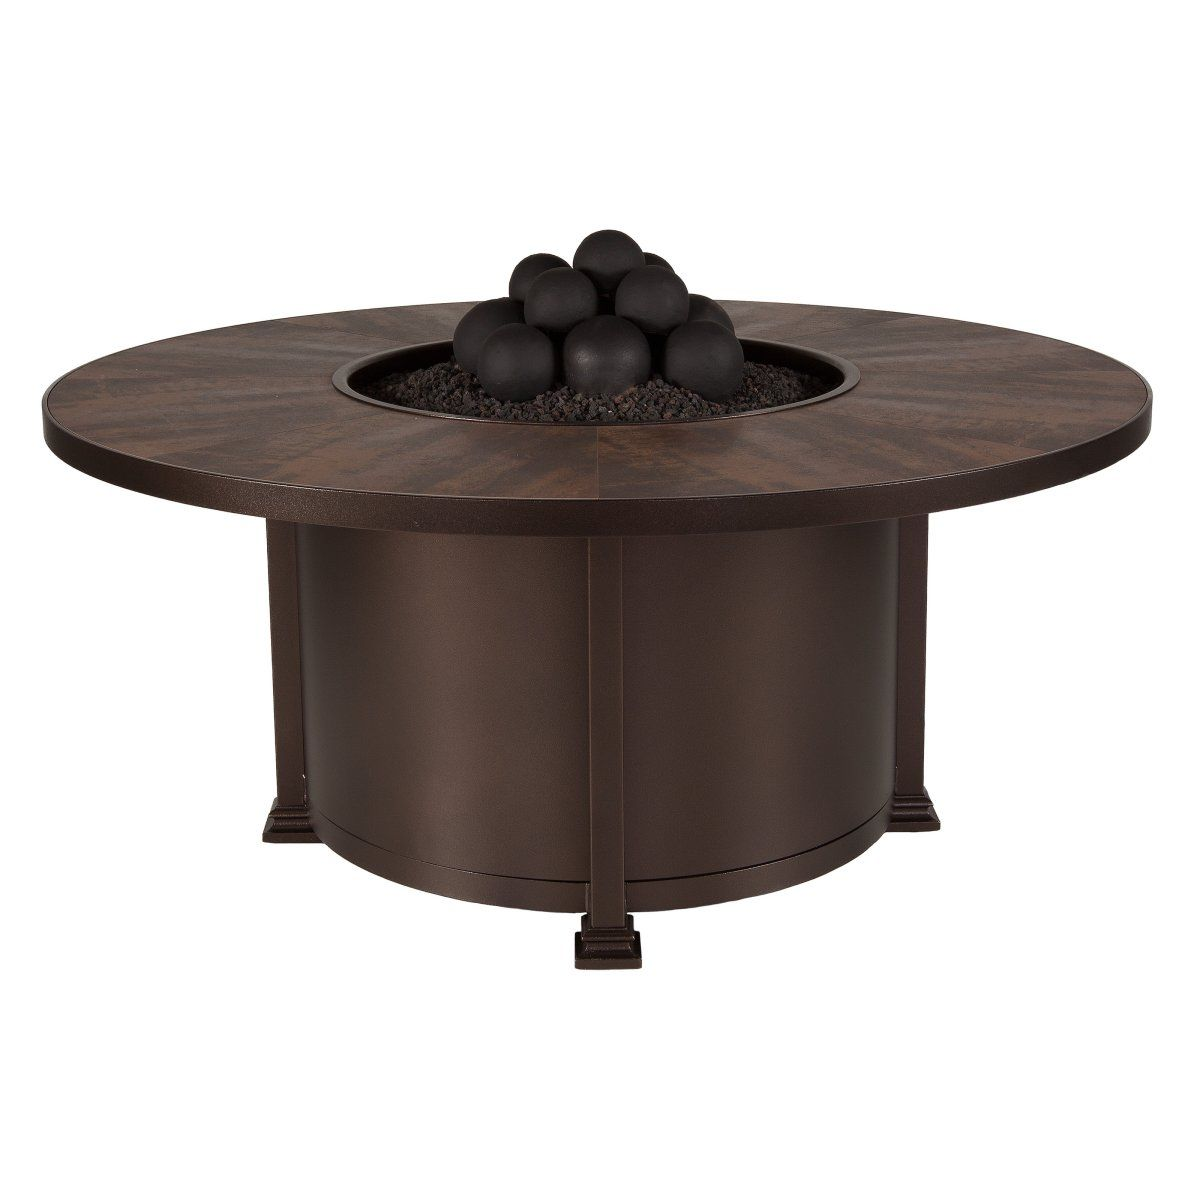 O W Lee Santorini Iron 54 In Round Fire Pit Chat Table